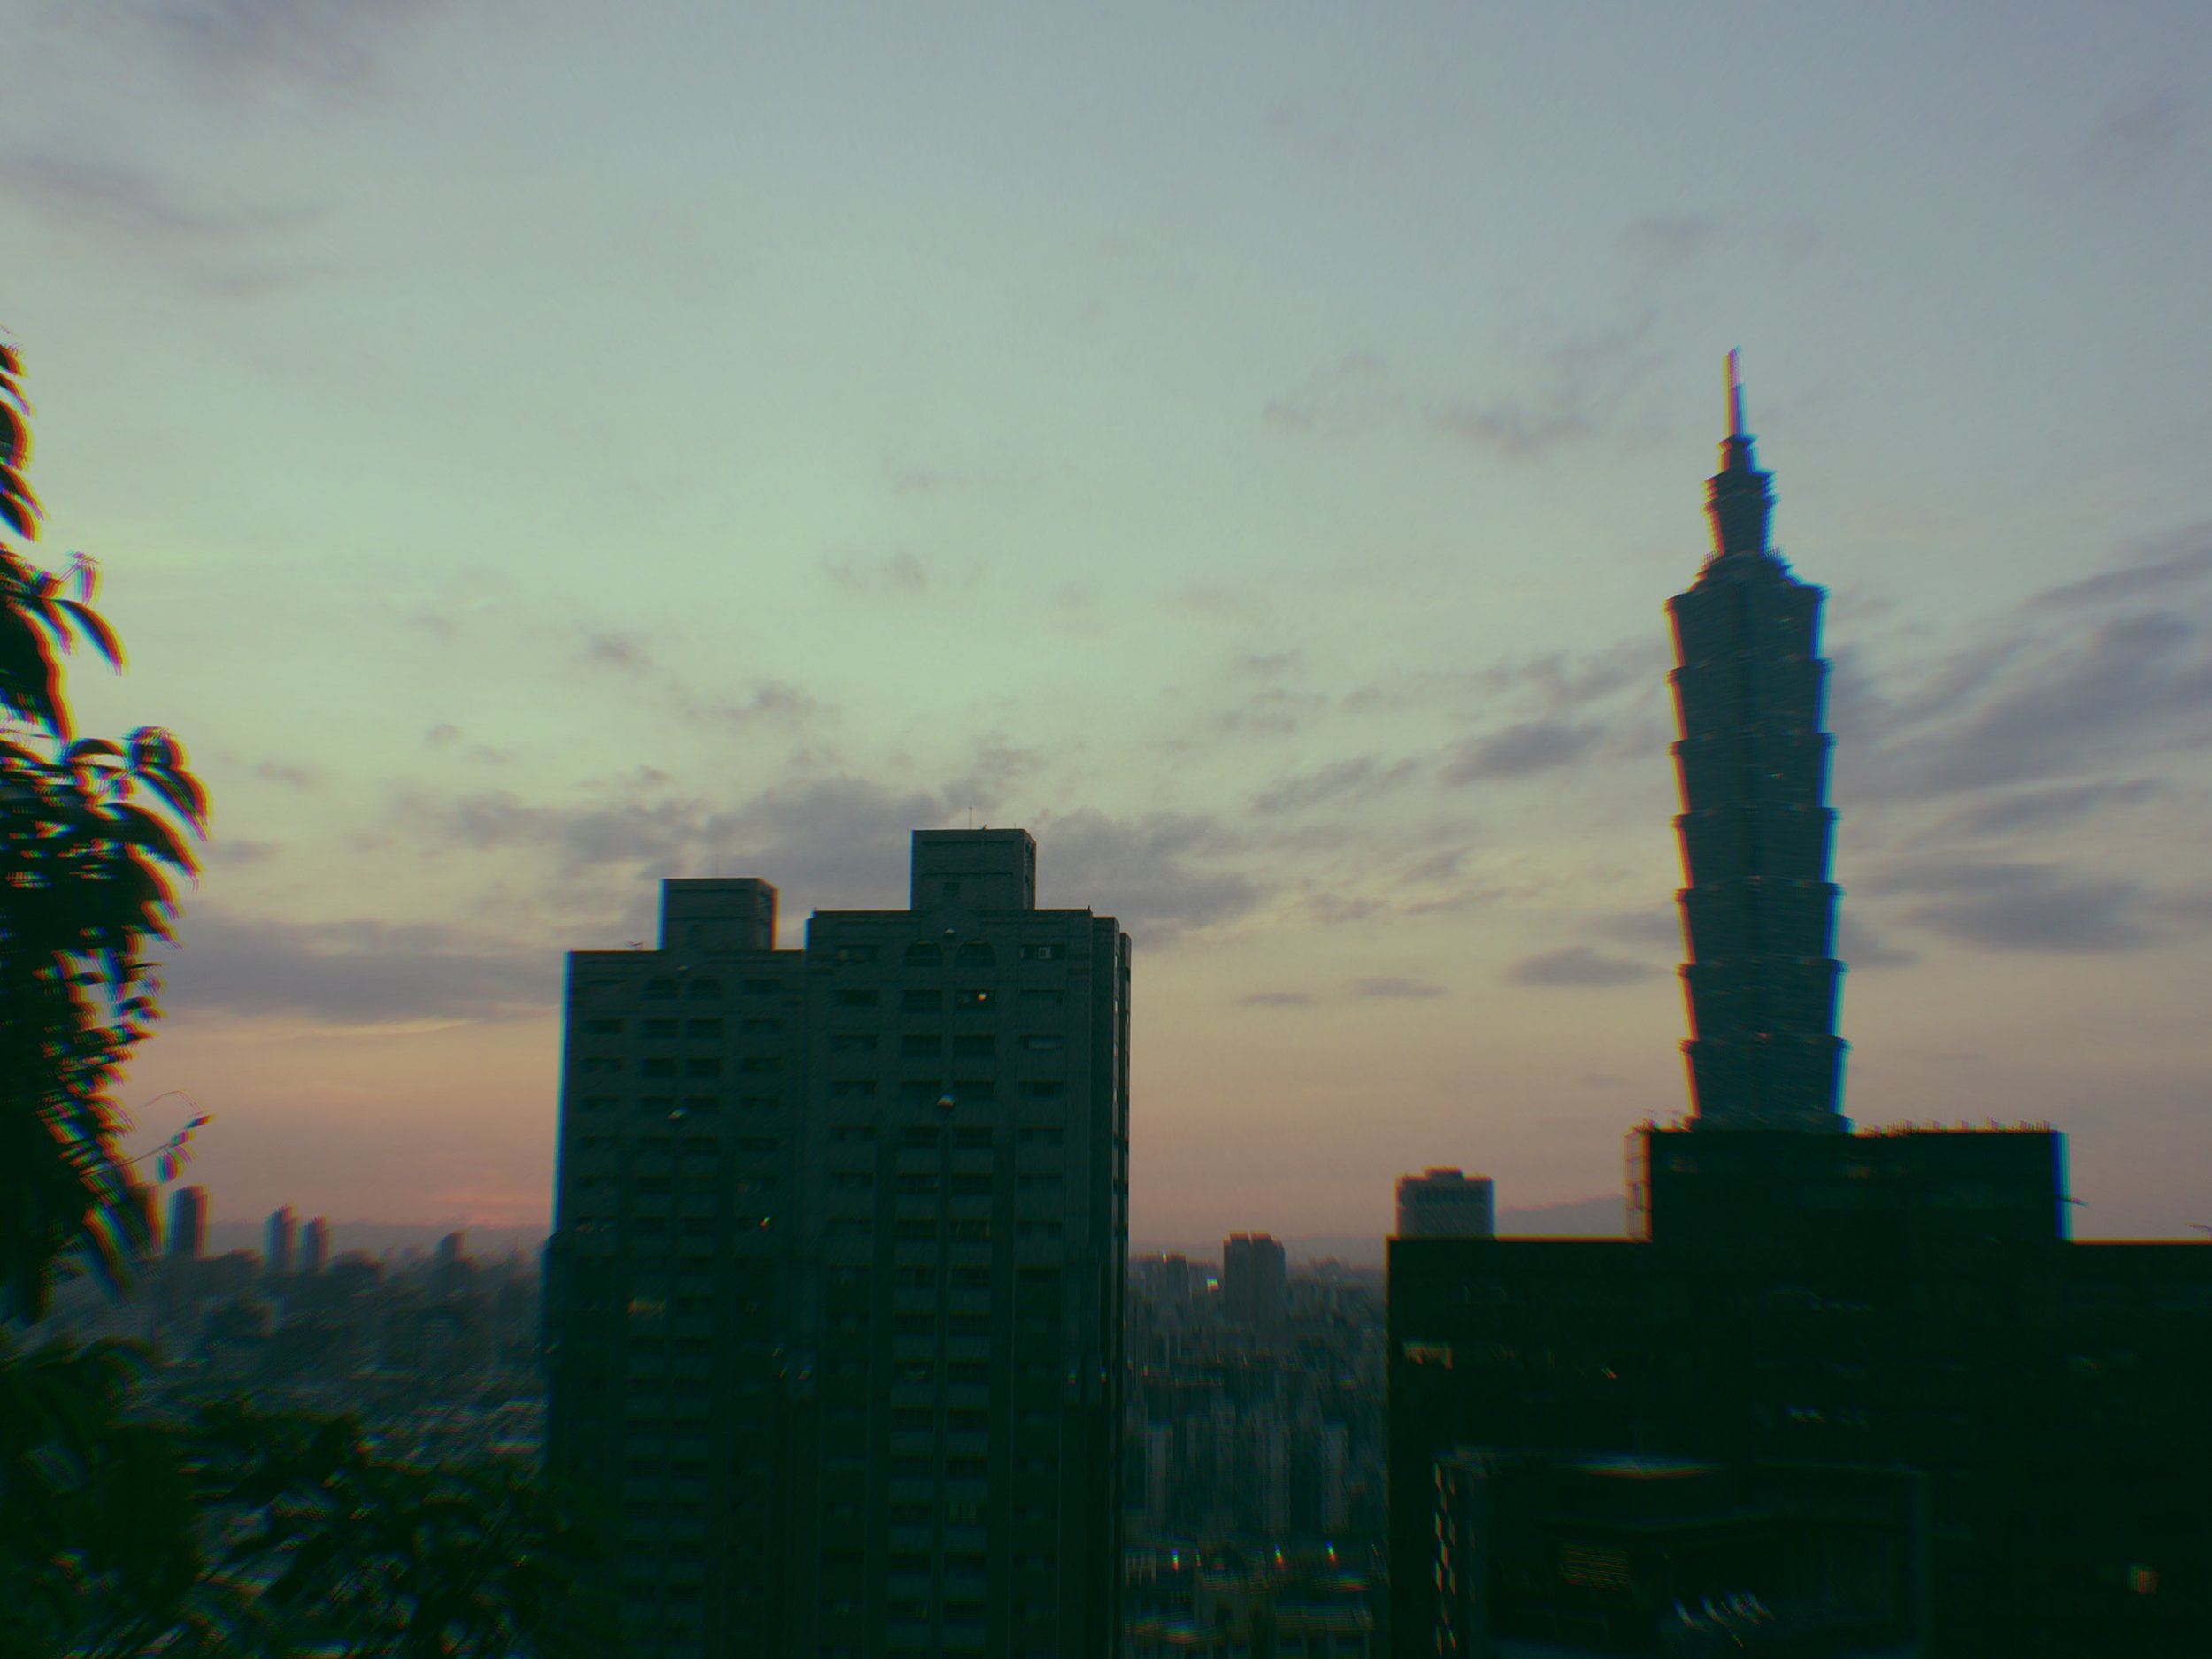 Taipei 101 hovering over the city skyline